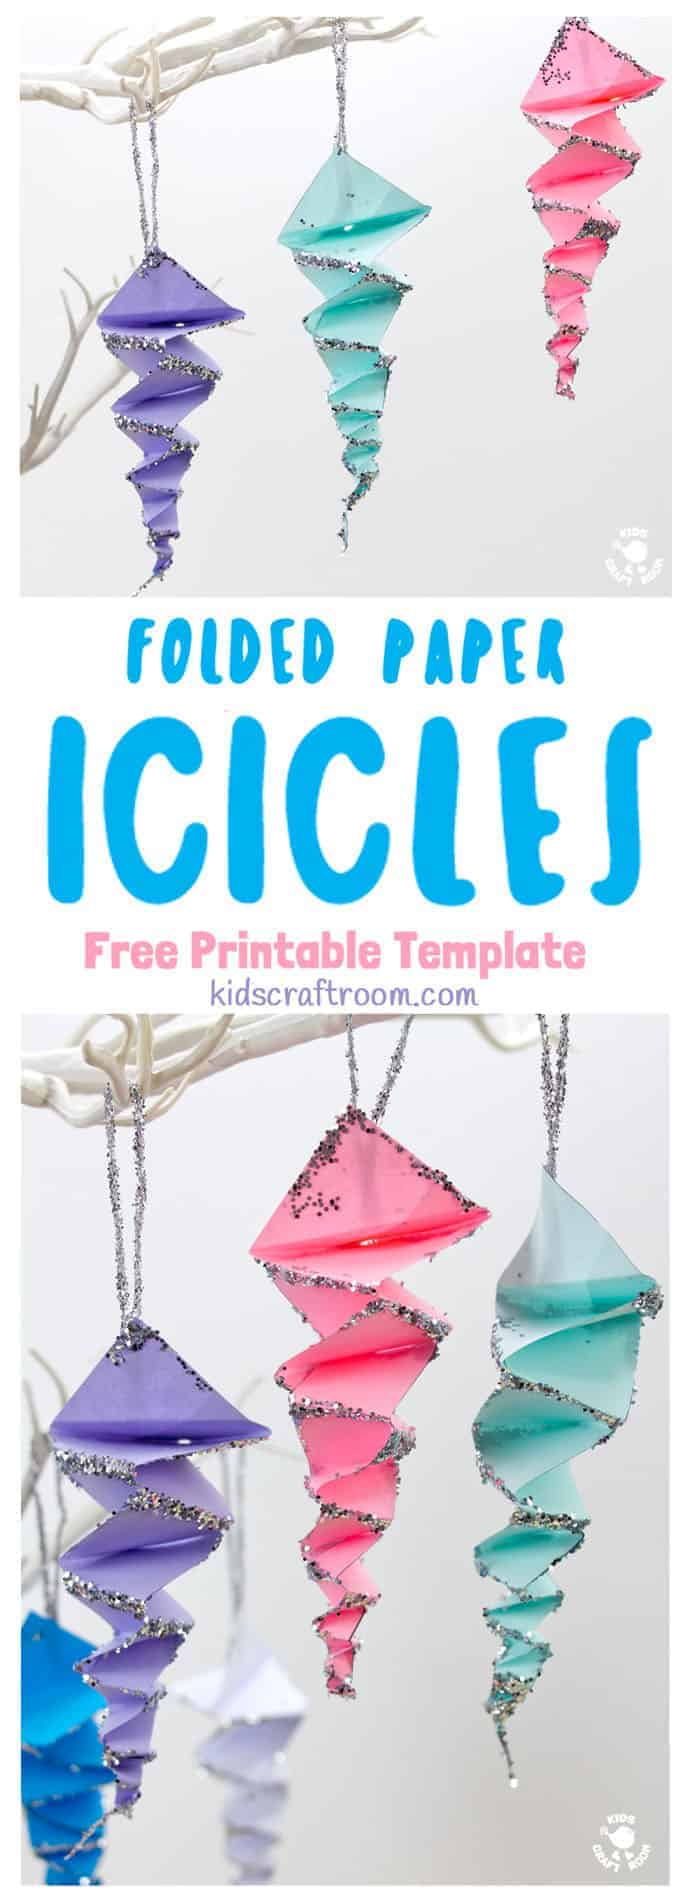 This Folded Paper Icicle Craft looks fantastic in white or colours. These homemade icicles are easy to make with the free printable pattern, just print, cut and fold! A lovely Winter craft for kids. #icicles #iciclecrafts #winter #wintercrafts #kidscrafts #papercrafts #origami #kidscraftroom #paperfolding